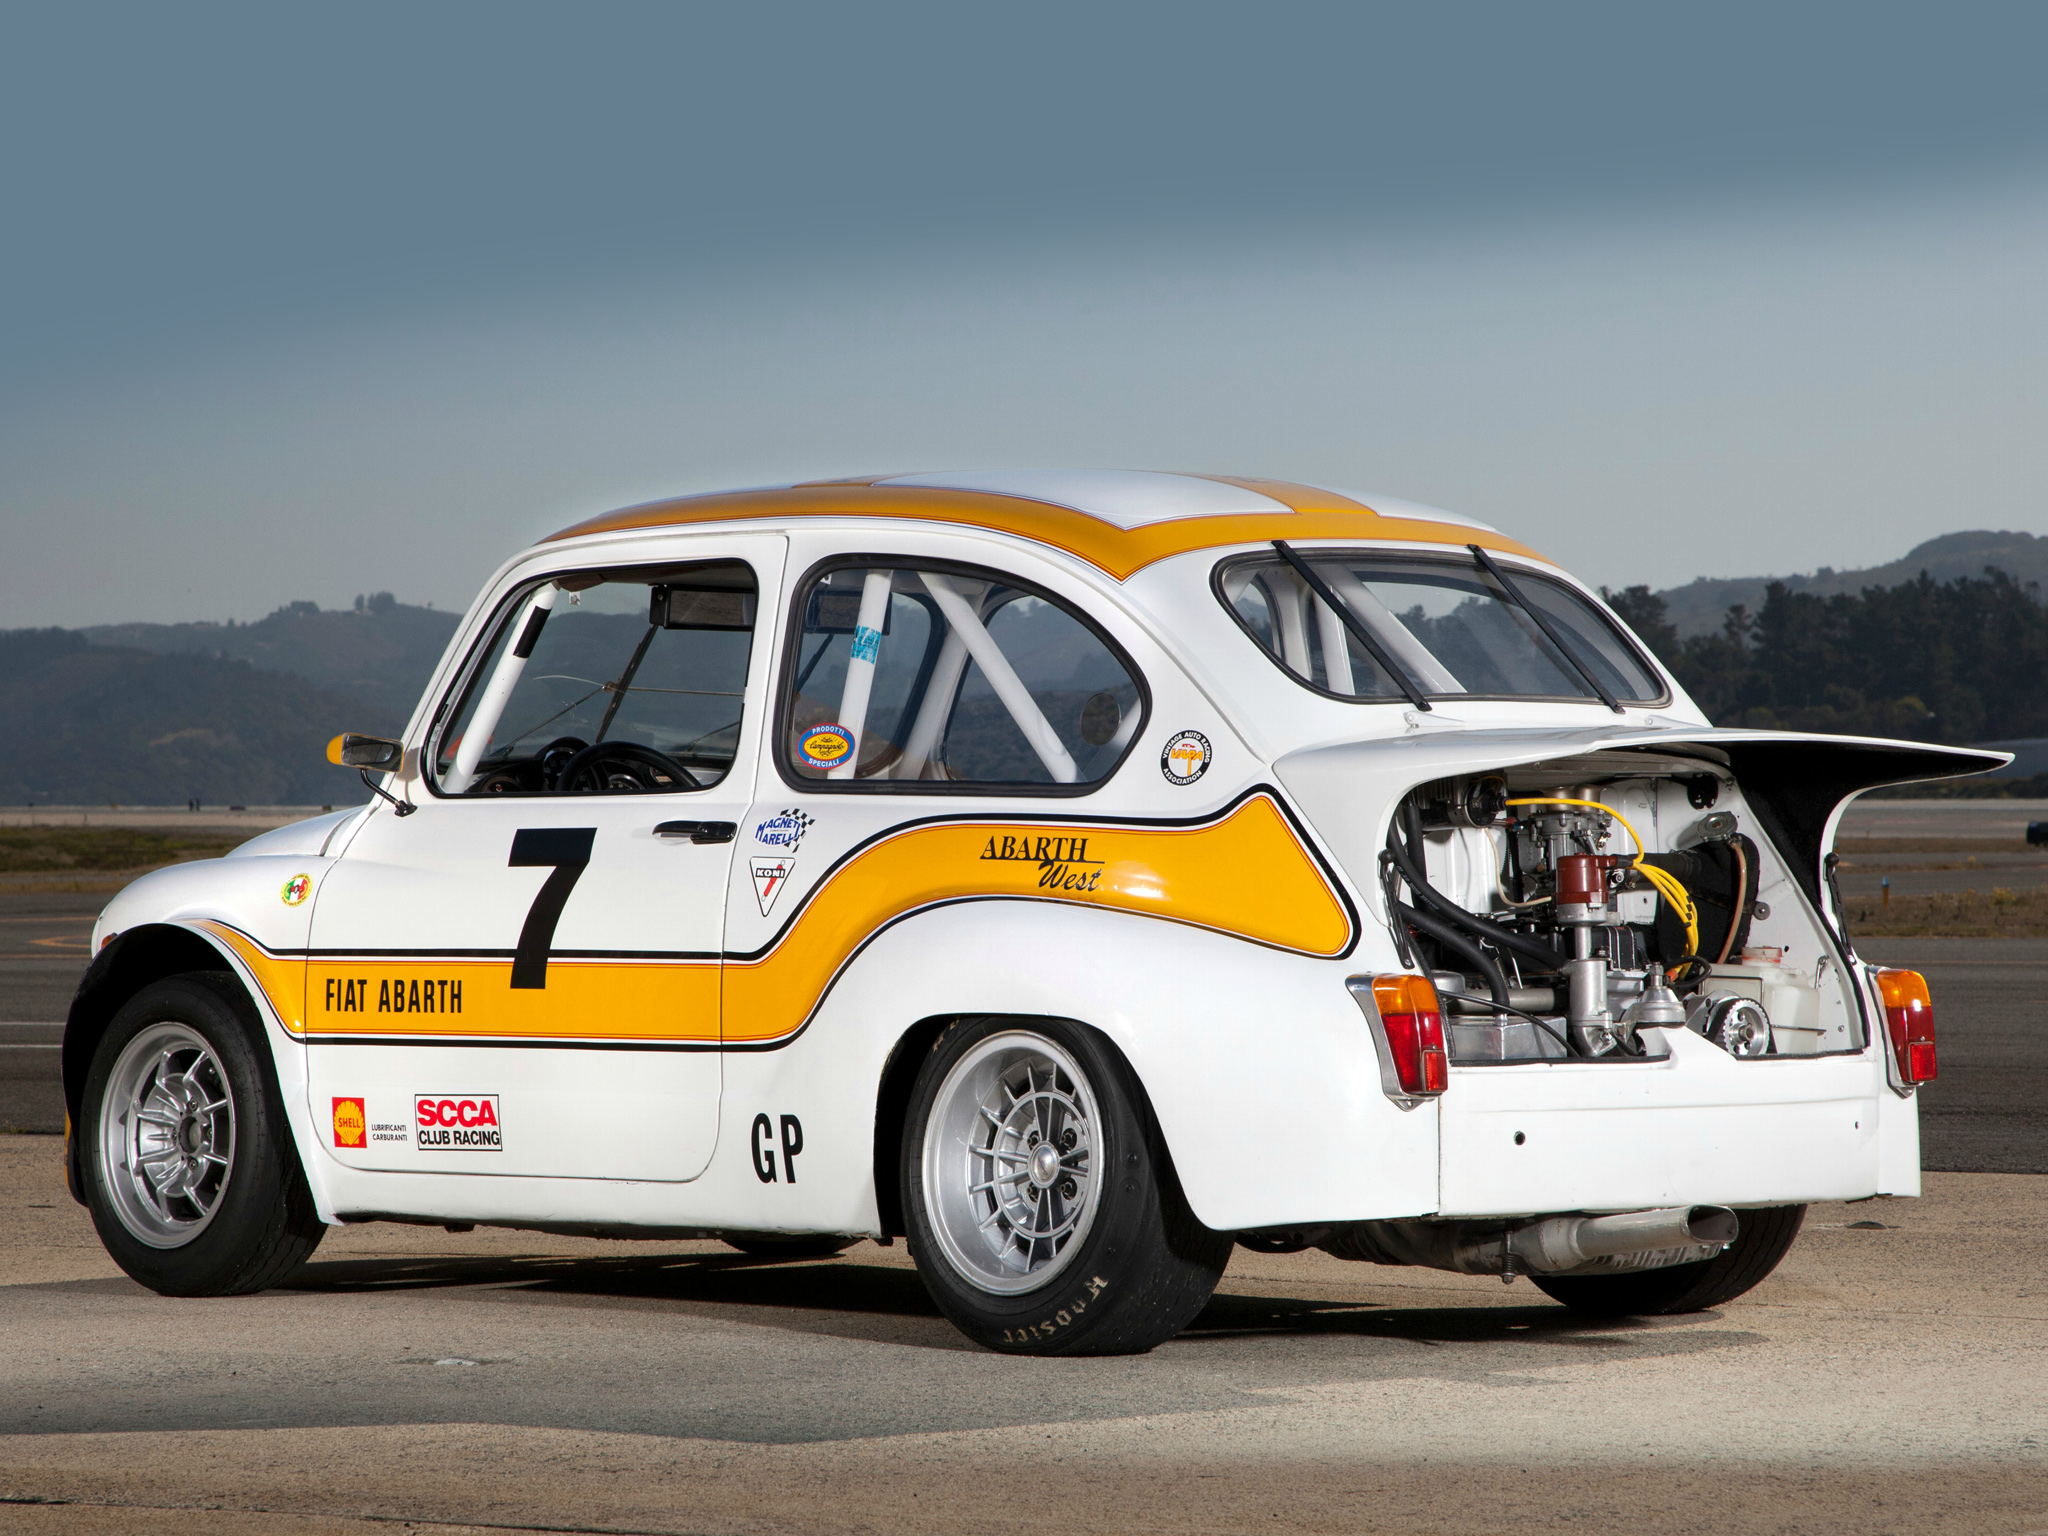 1970 Abarth Fiat 1000 Tcr Group 2 Race Racing Engine G